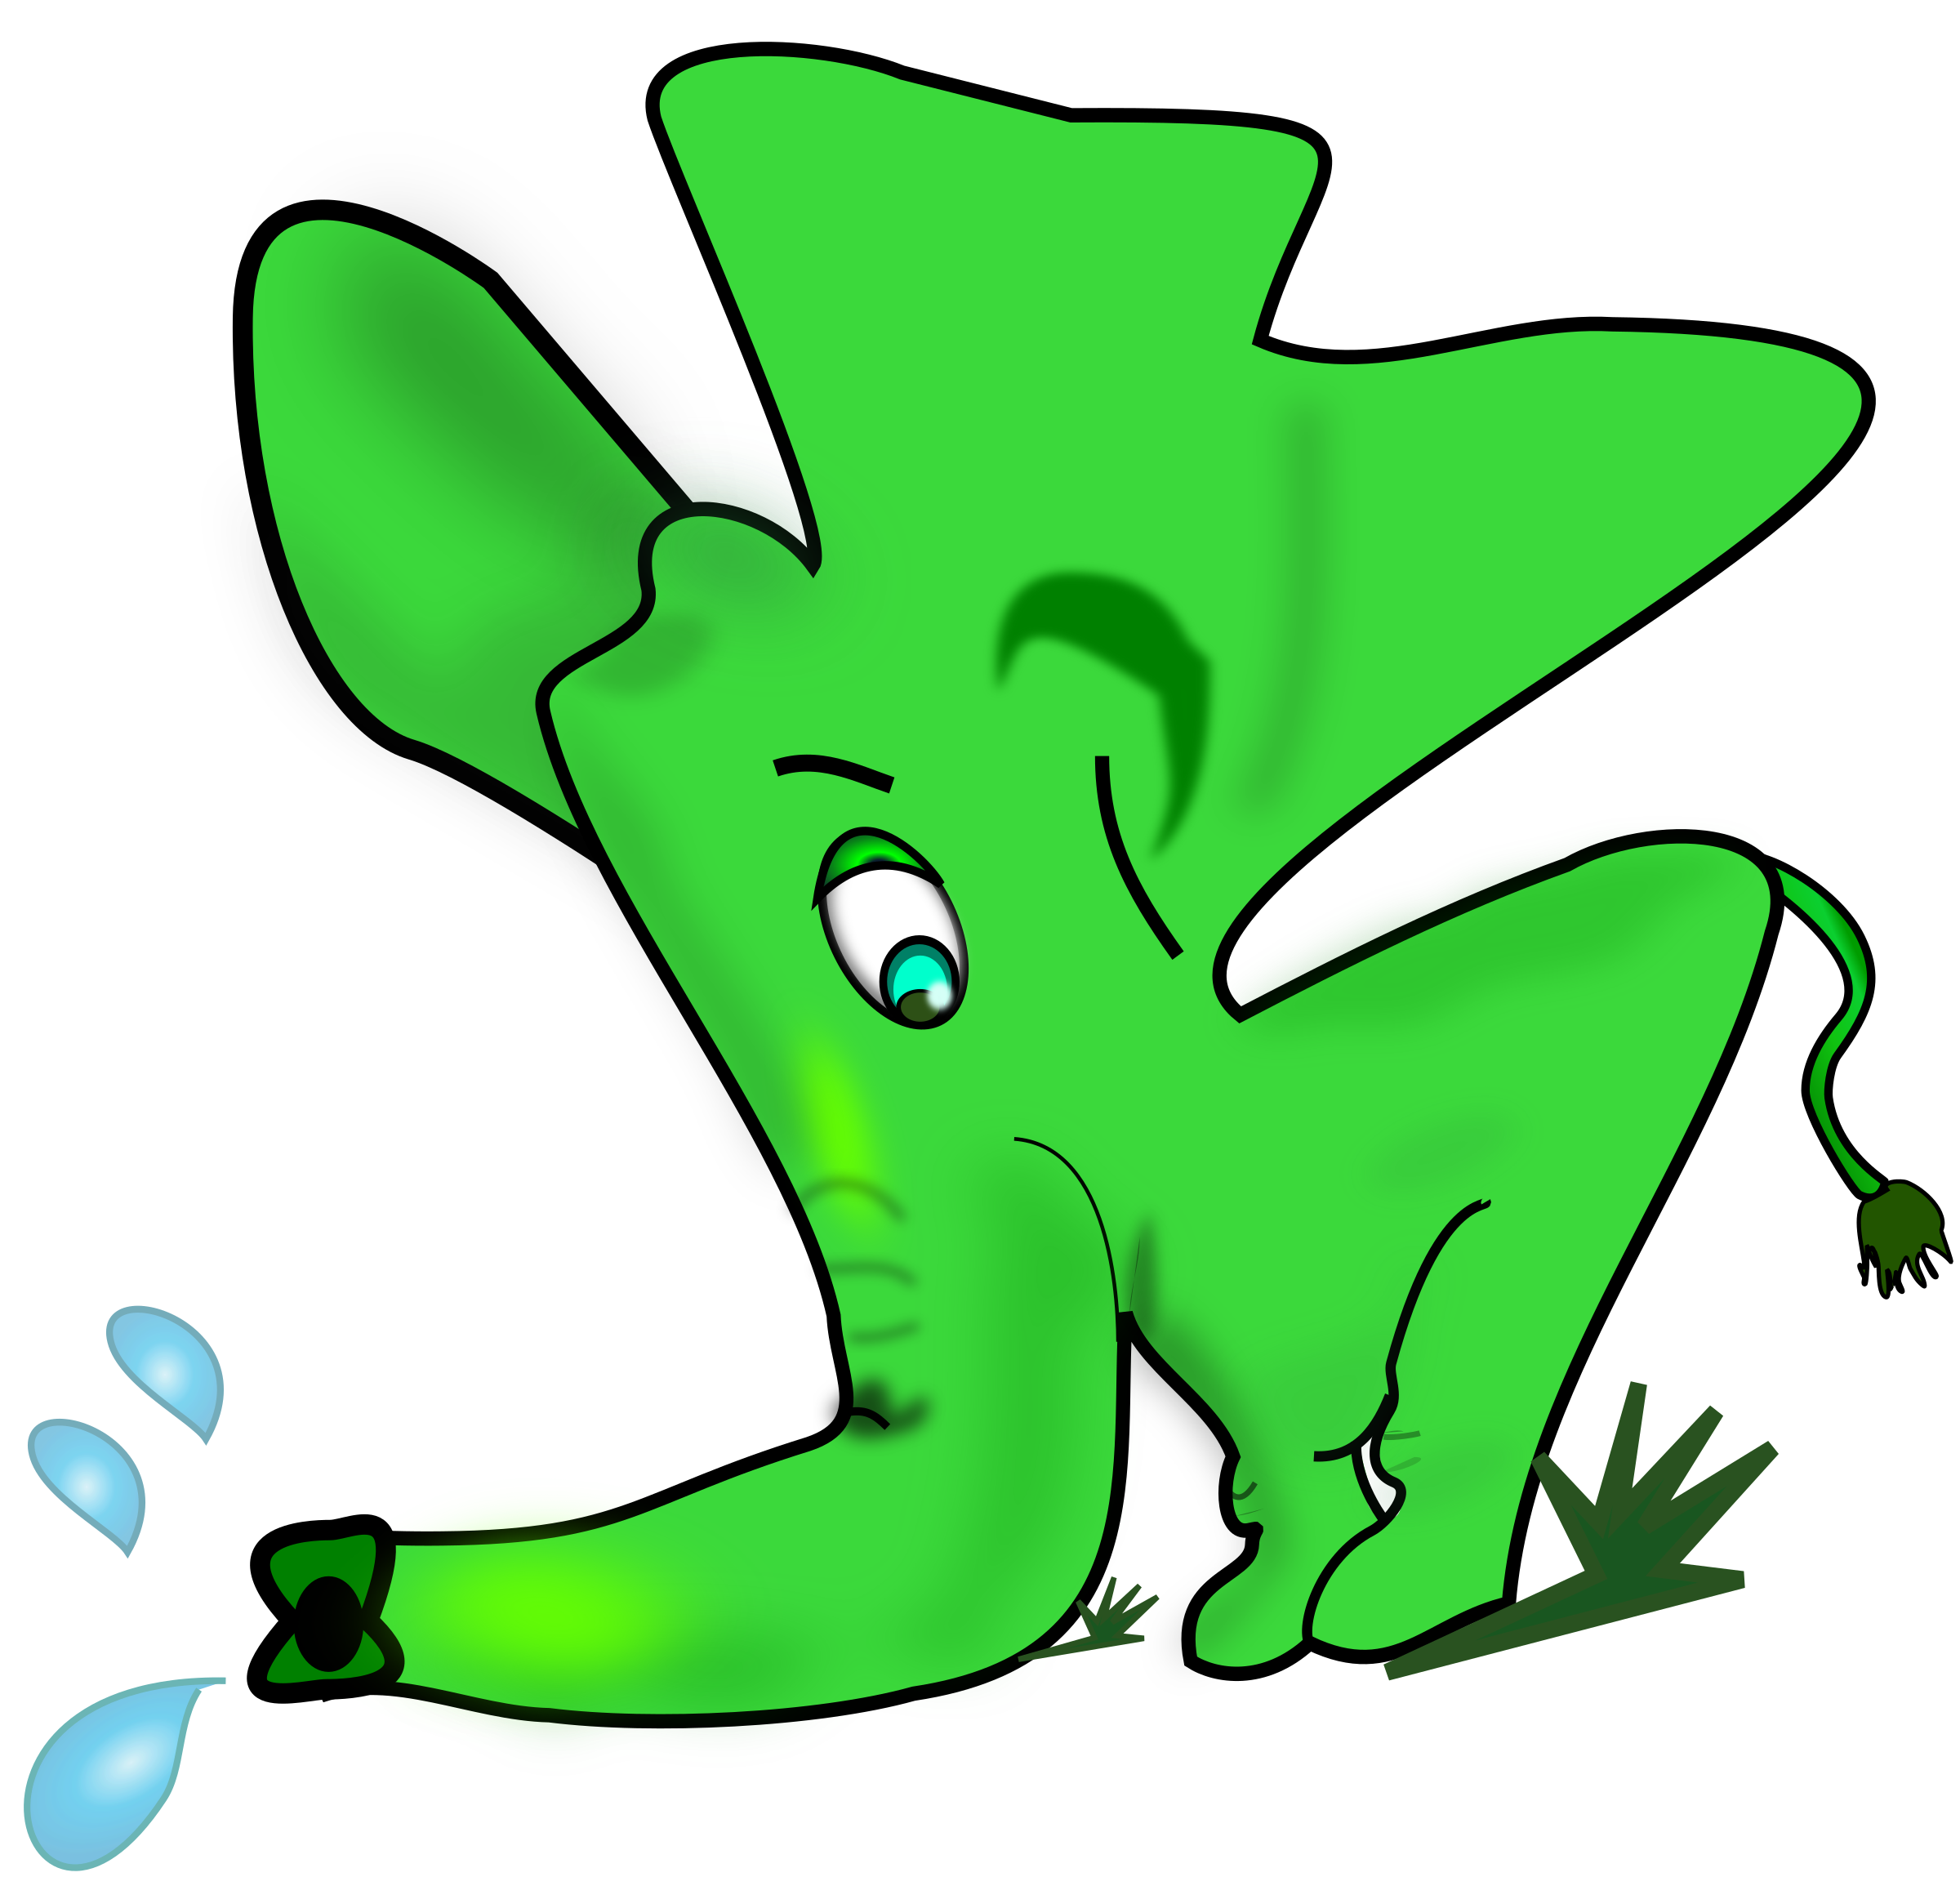 Little green elephant by helisdf